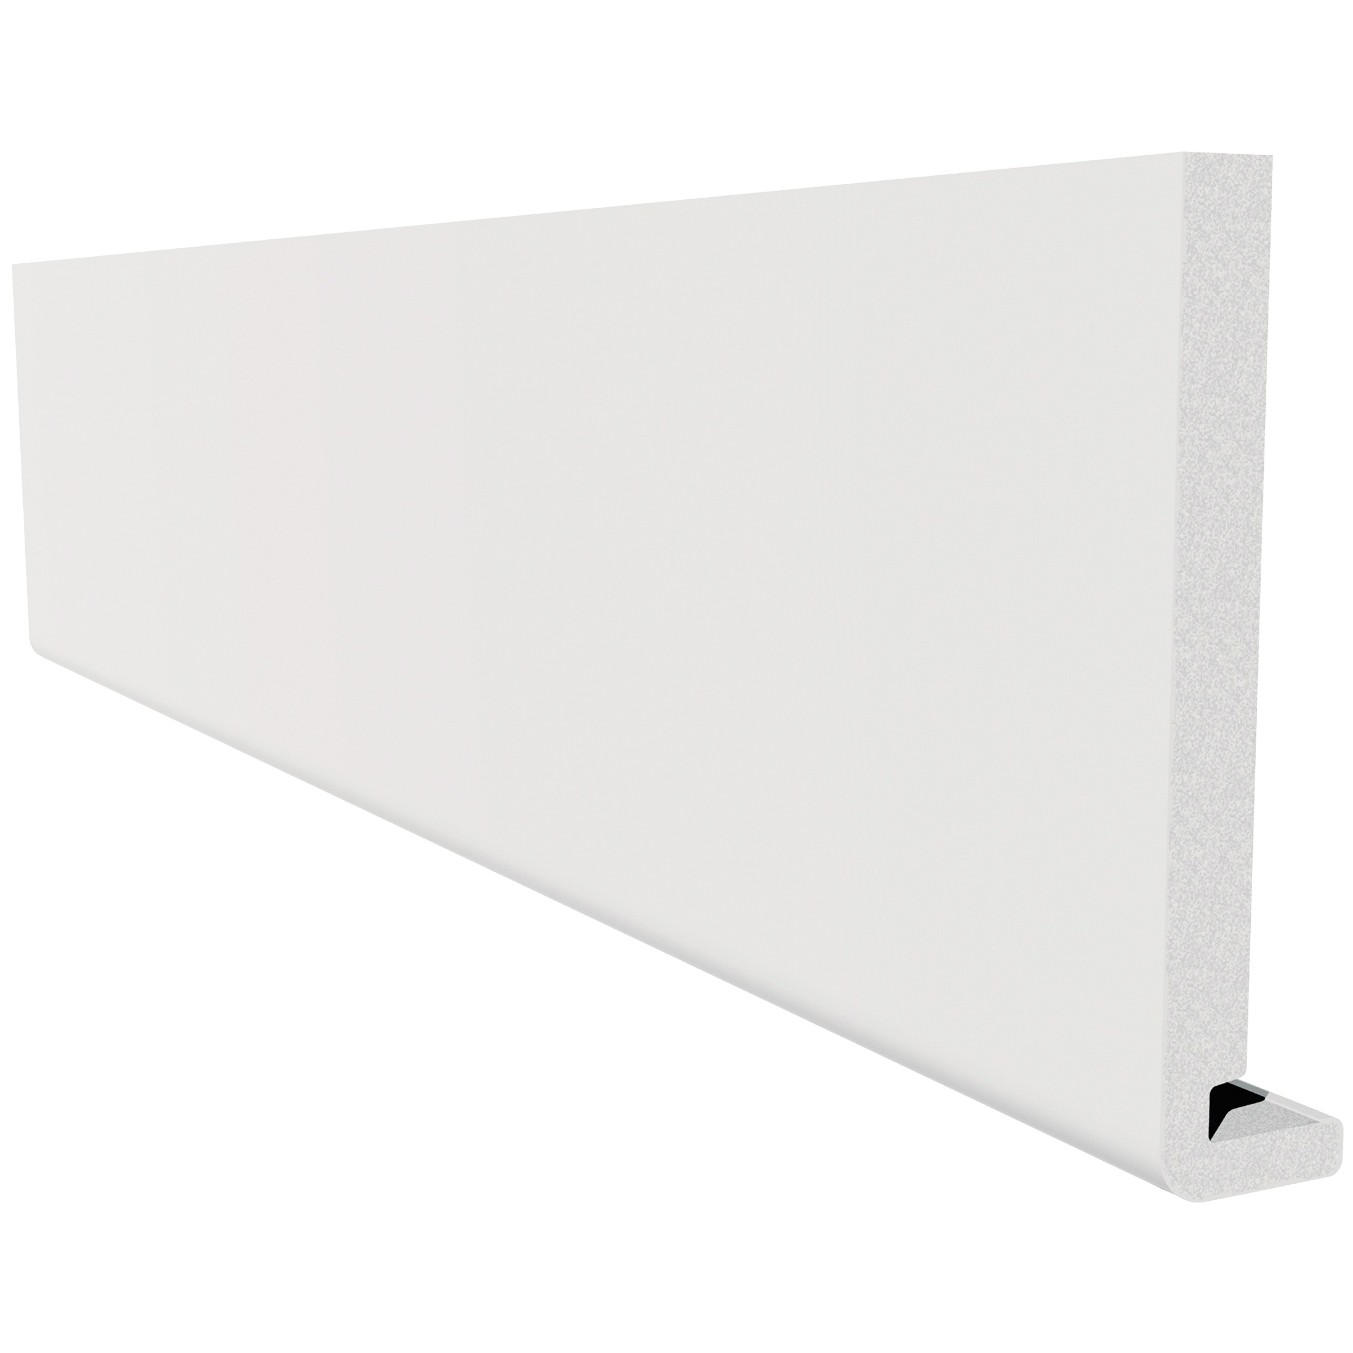 Freefoam Magnum Square Leg 18mm Fascia Board - White, 300mm, 5 metre